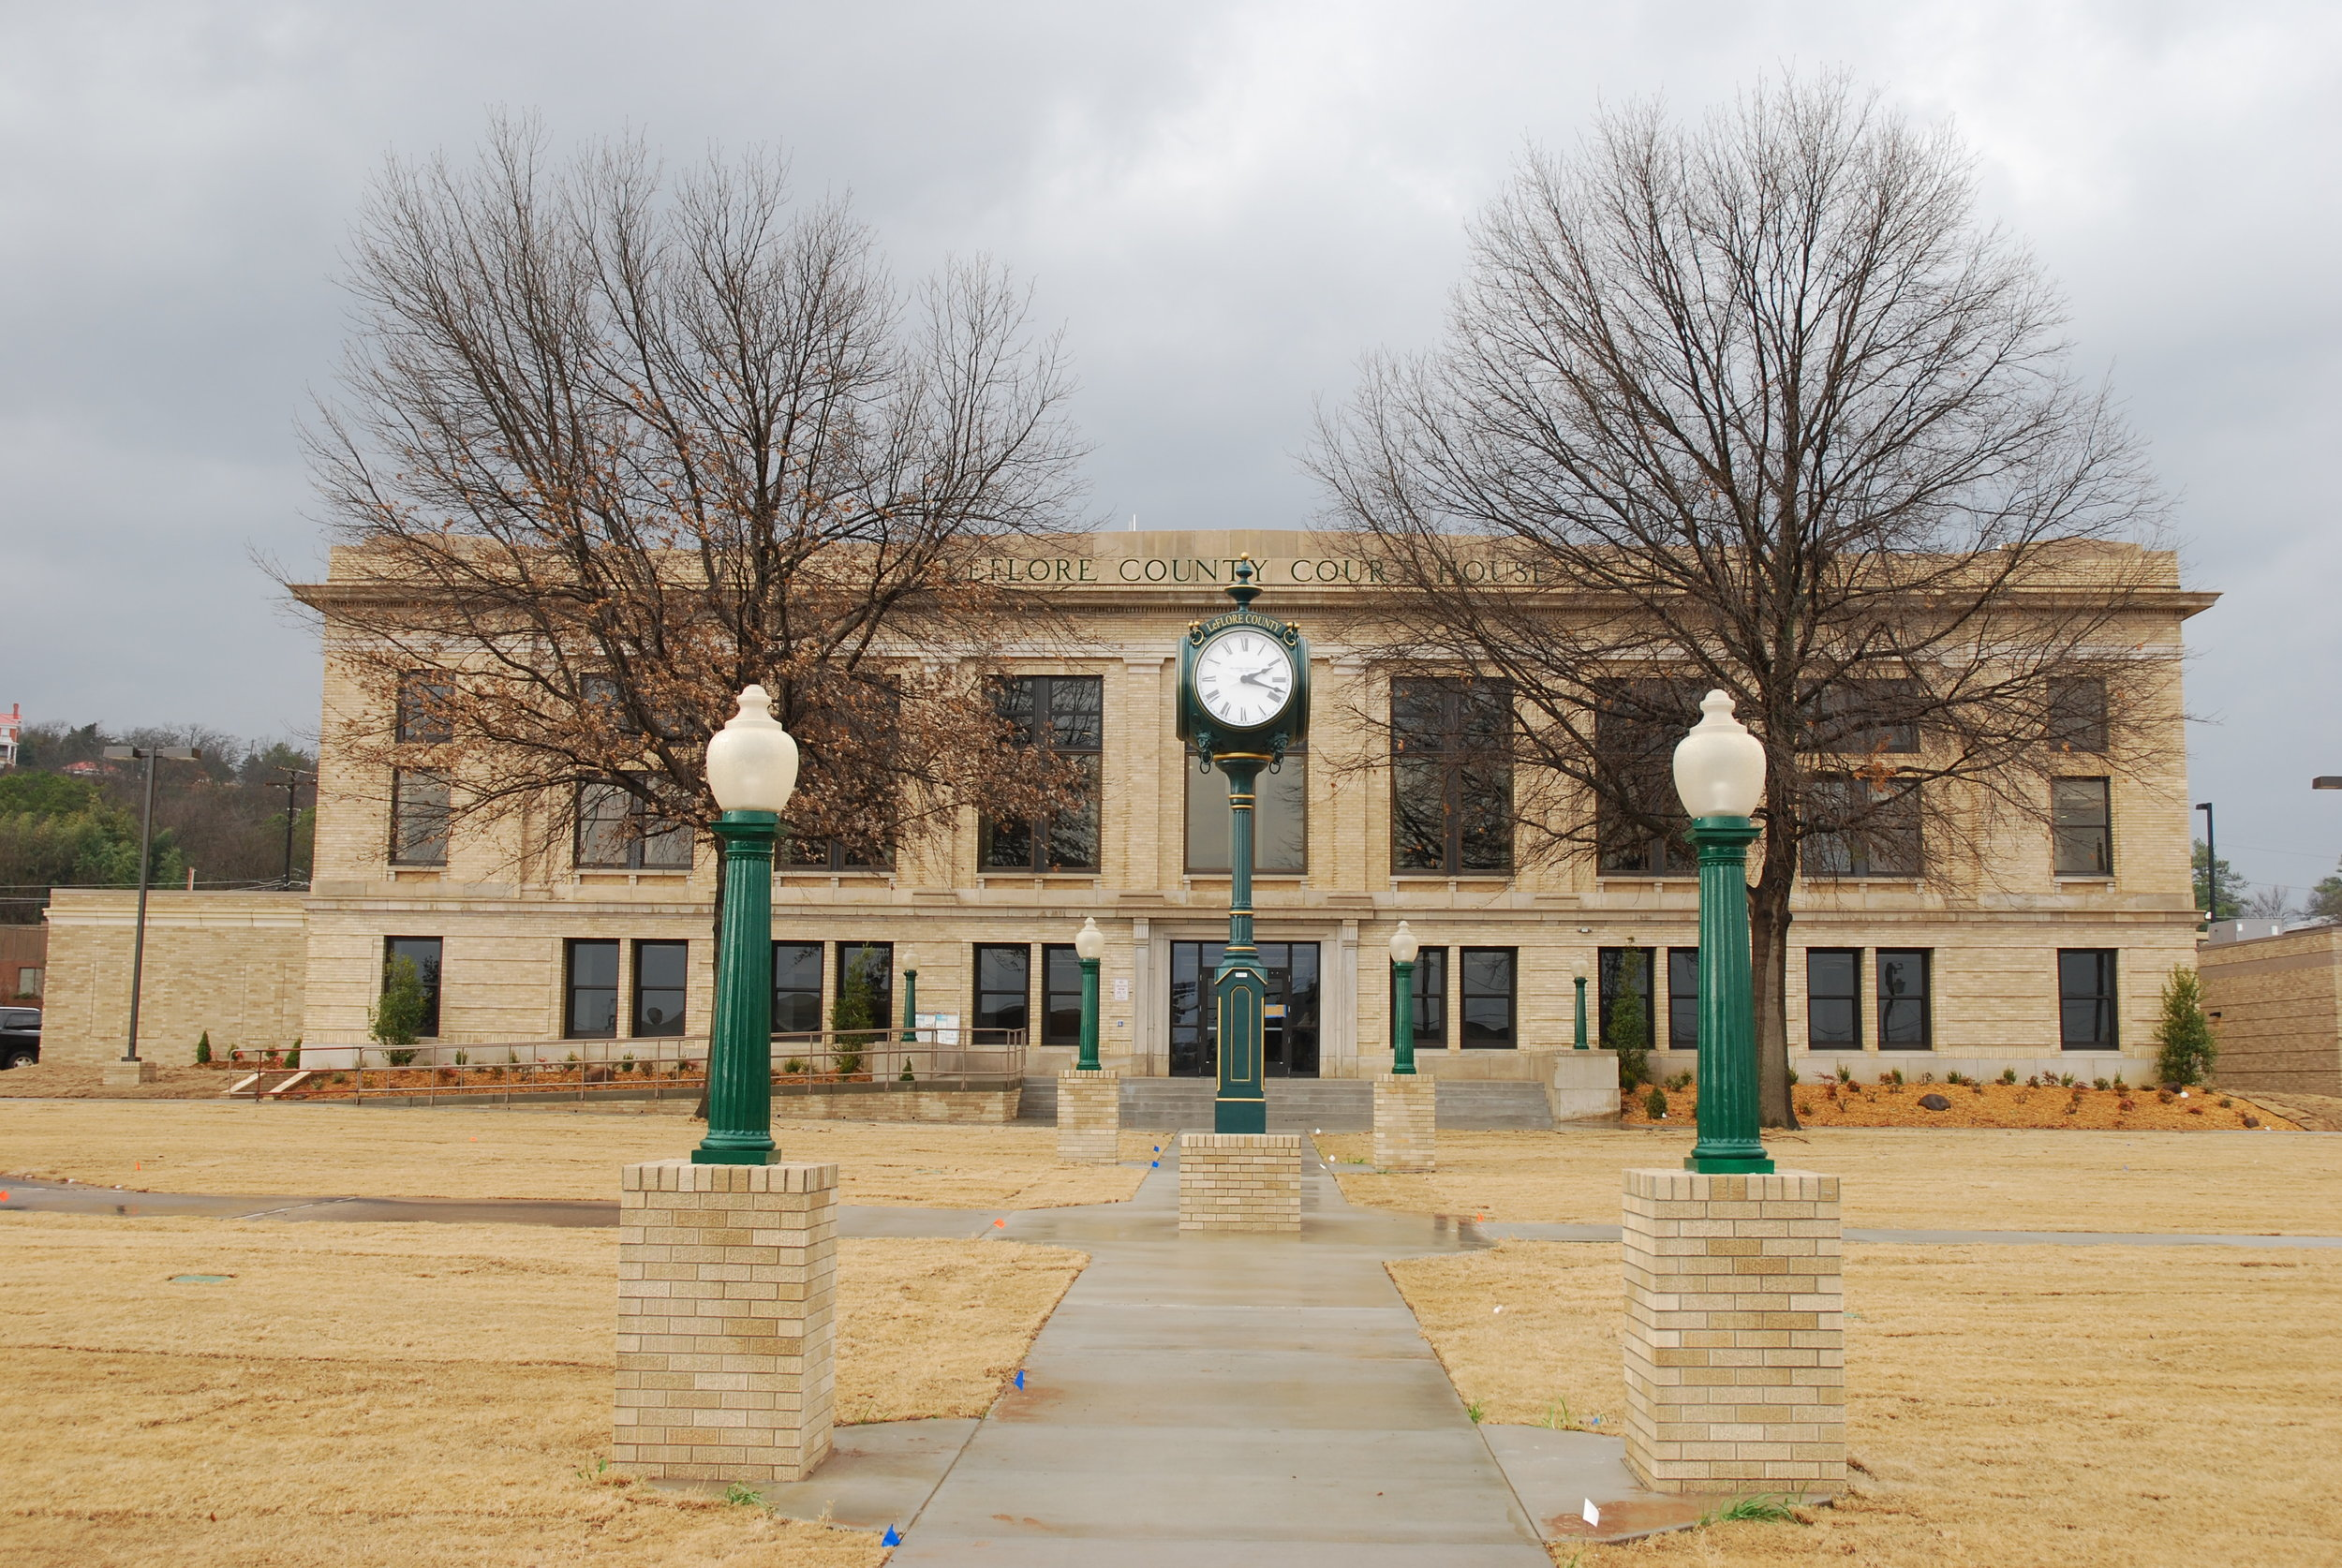 LEFLORE COUNTY COURTHOUSE EXTERIOR.JPG